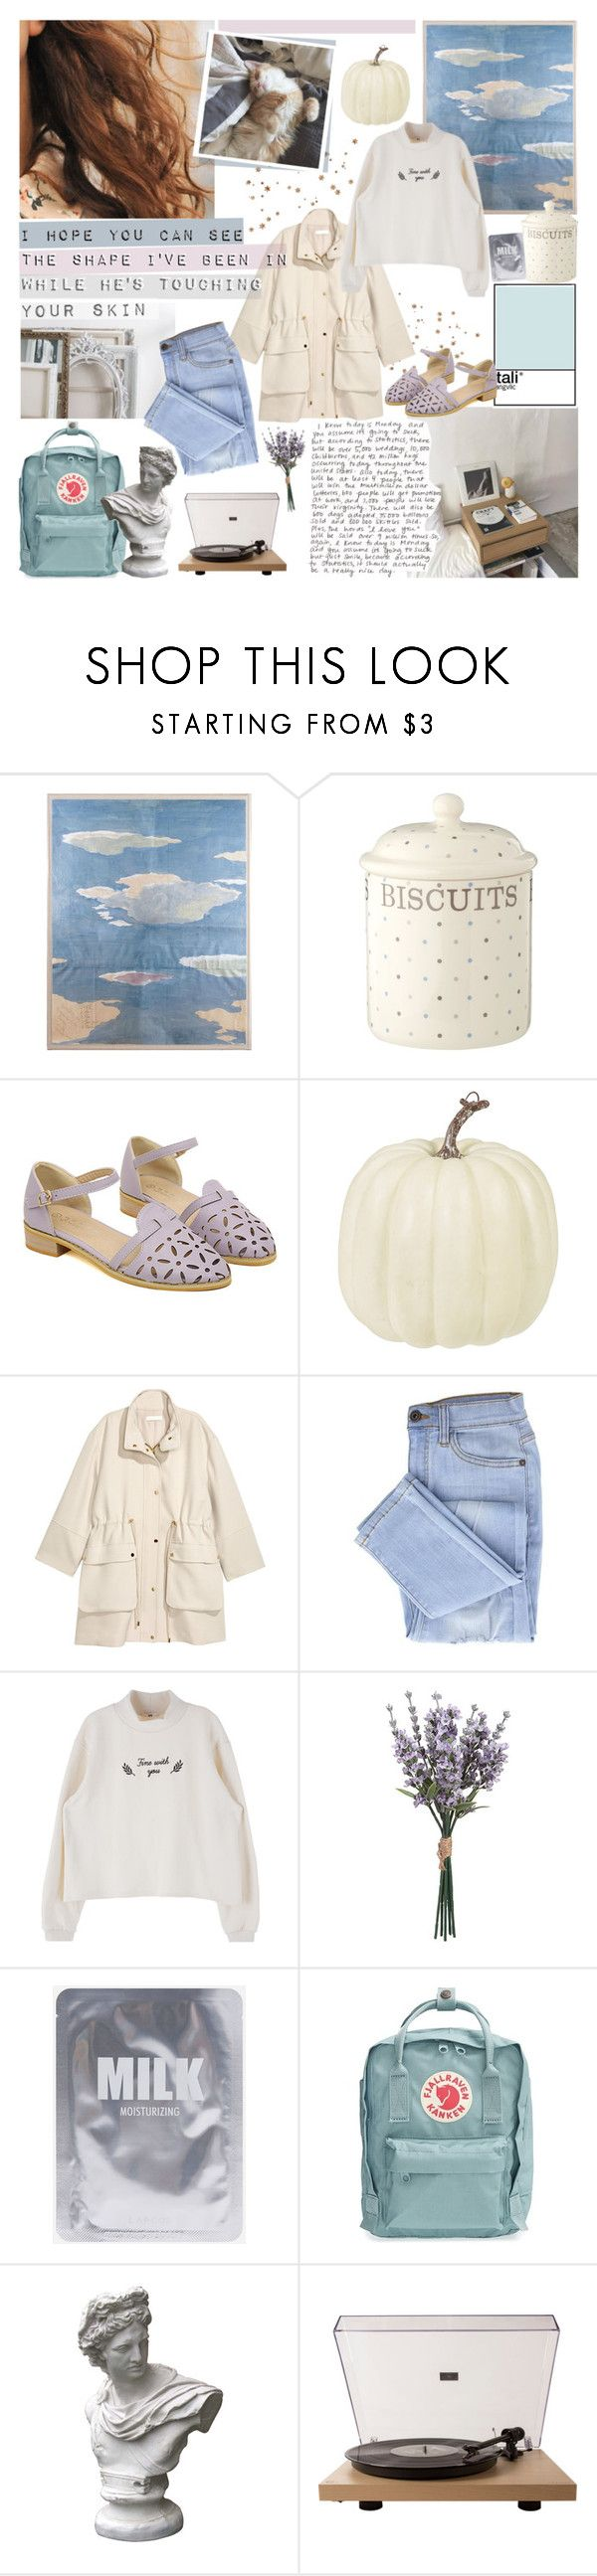 """""""YOU FLOWER, YOU FEAST"""" by cappvccino ❤ liked on Polyvore featuring Natural Curiosities, Fjällräven, Market and Crosley Radio & Furniture"""